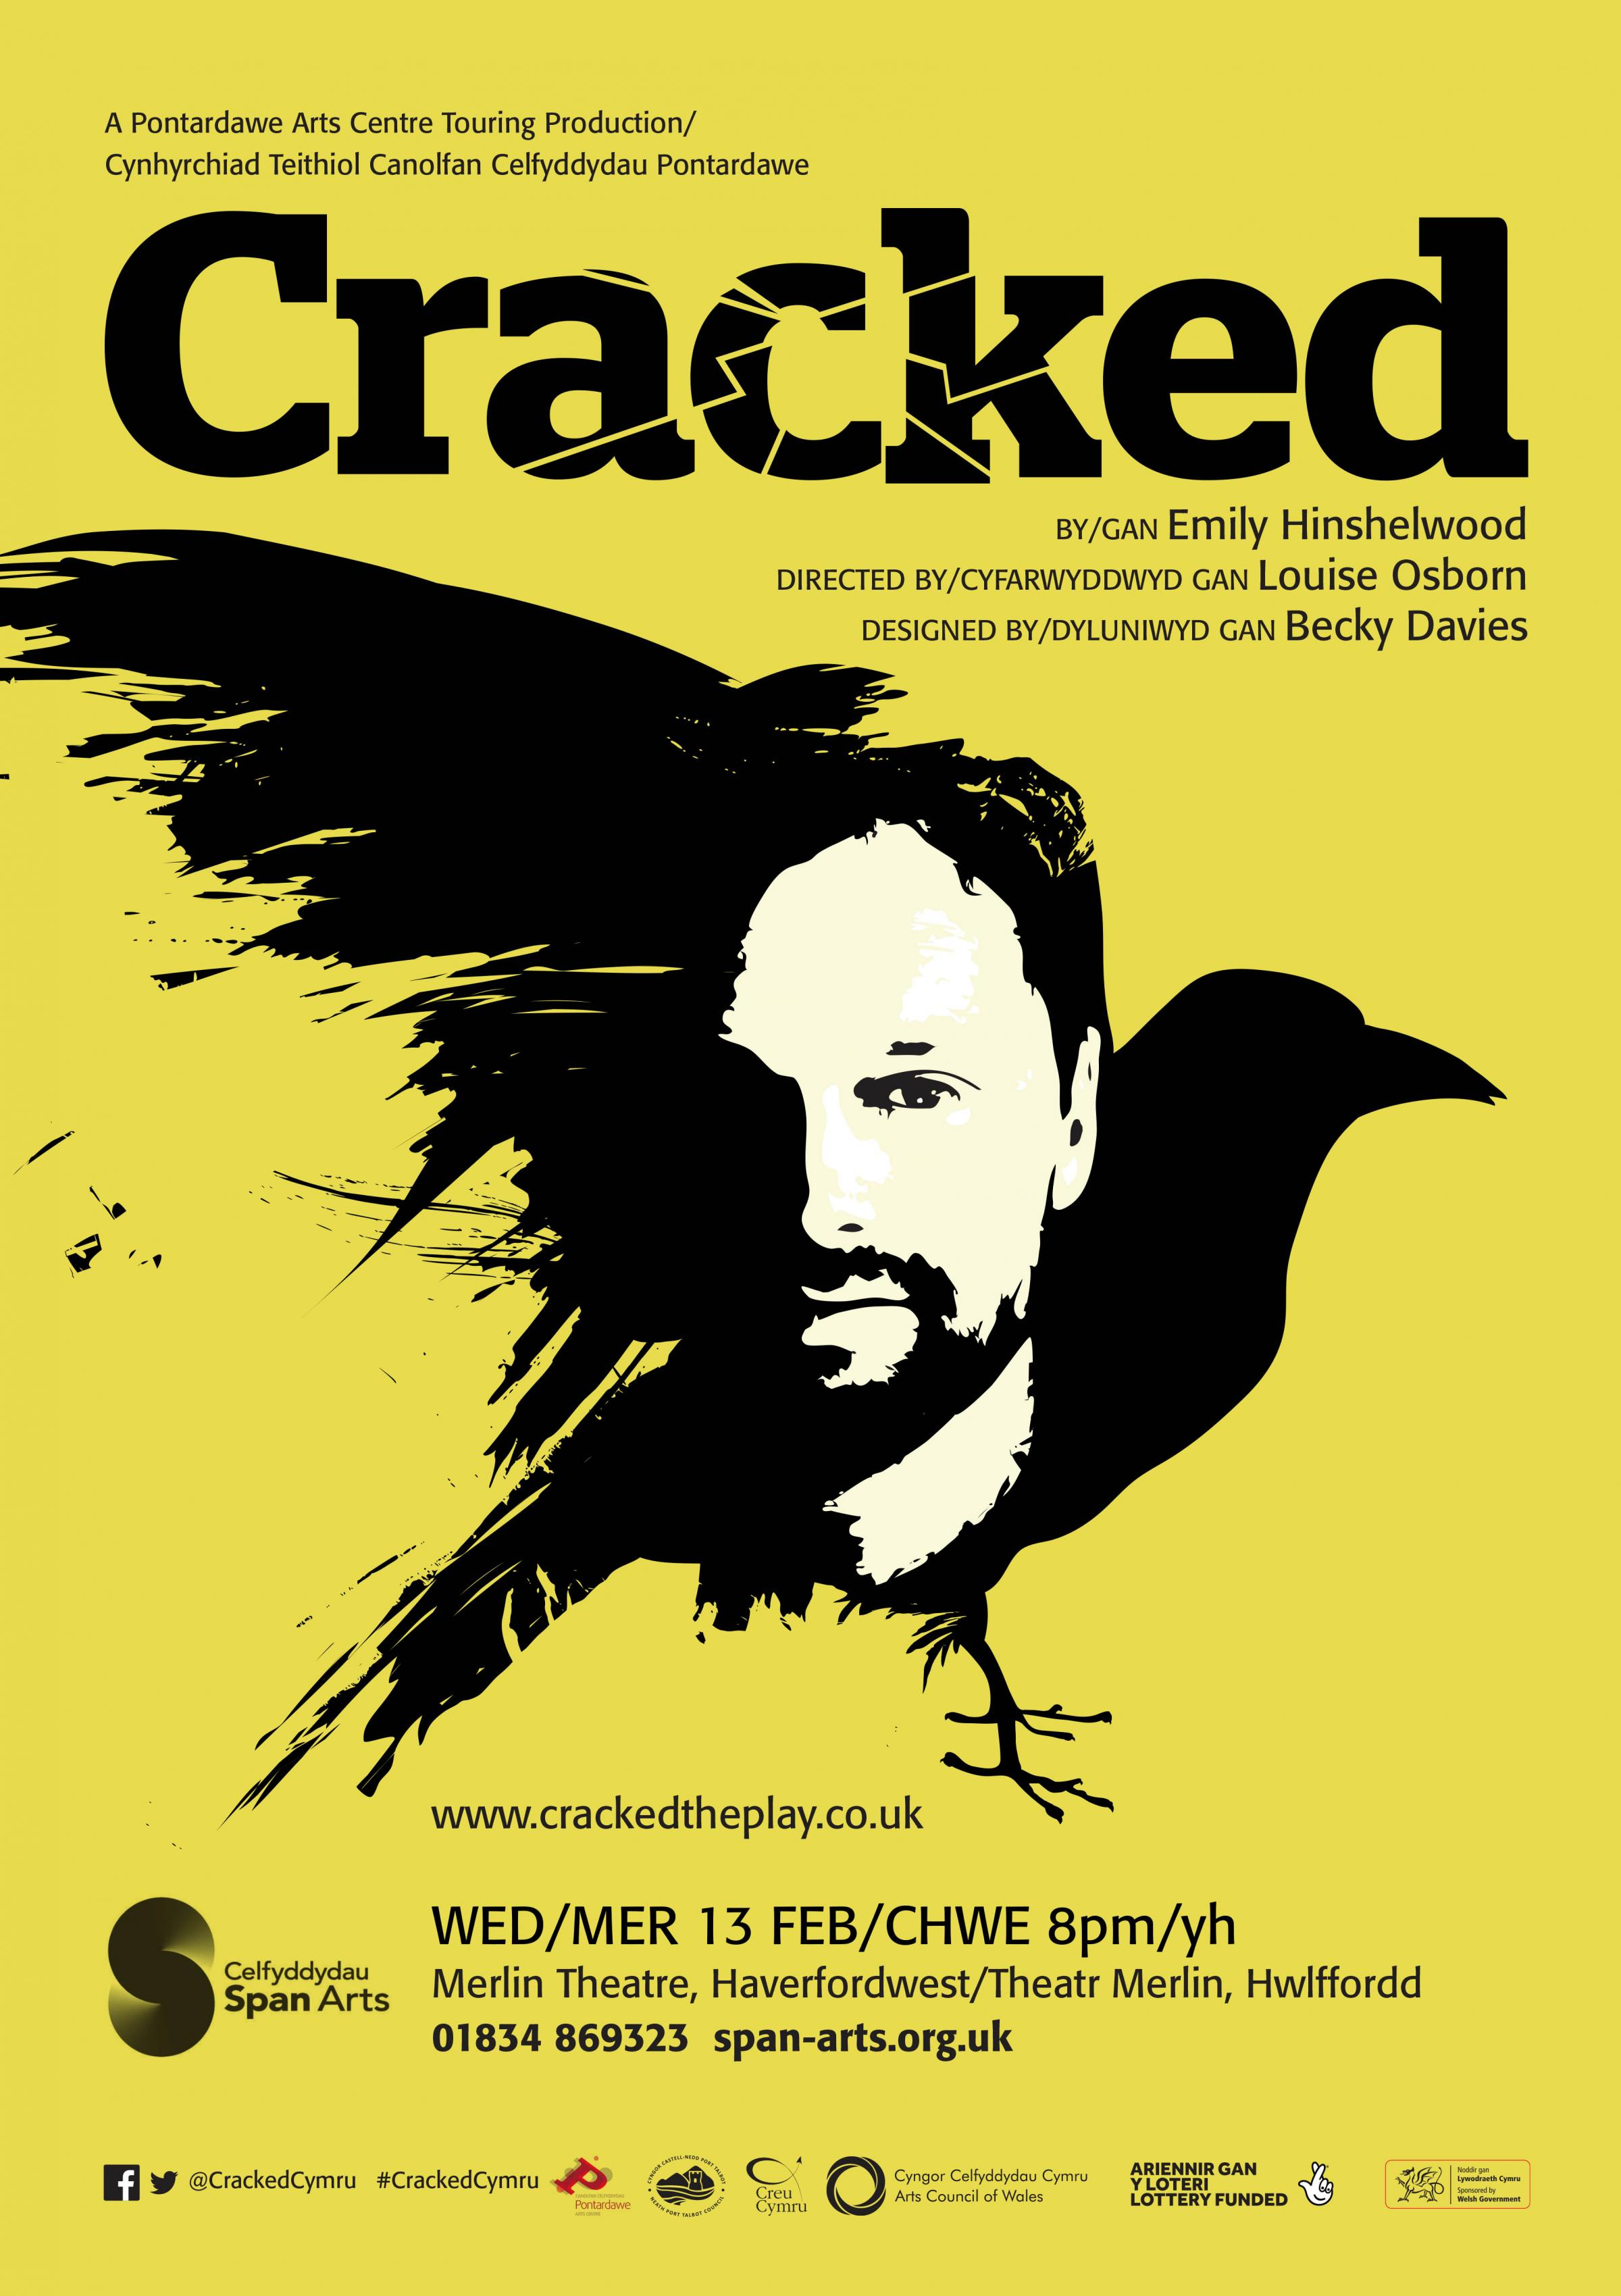 Cracked by Emily Hinshelwood